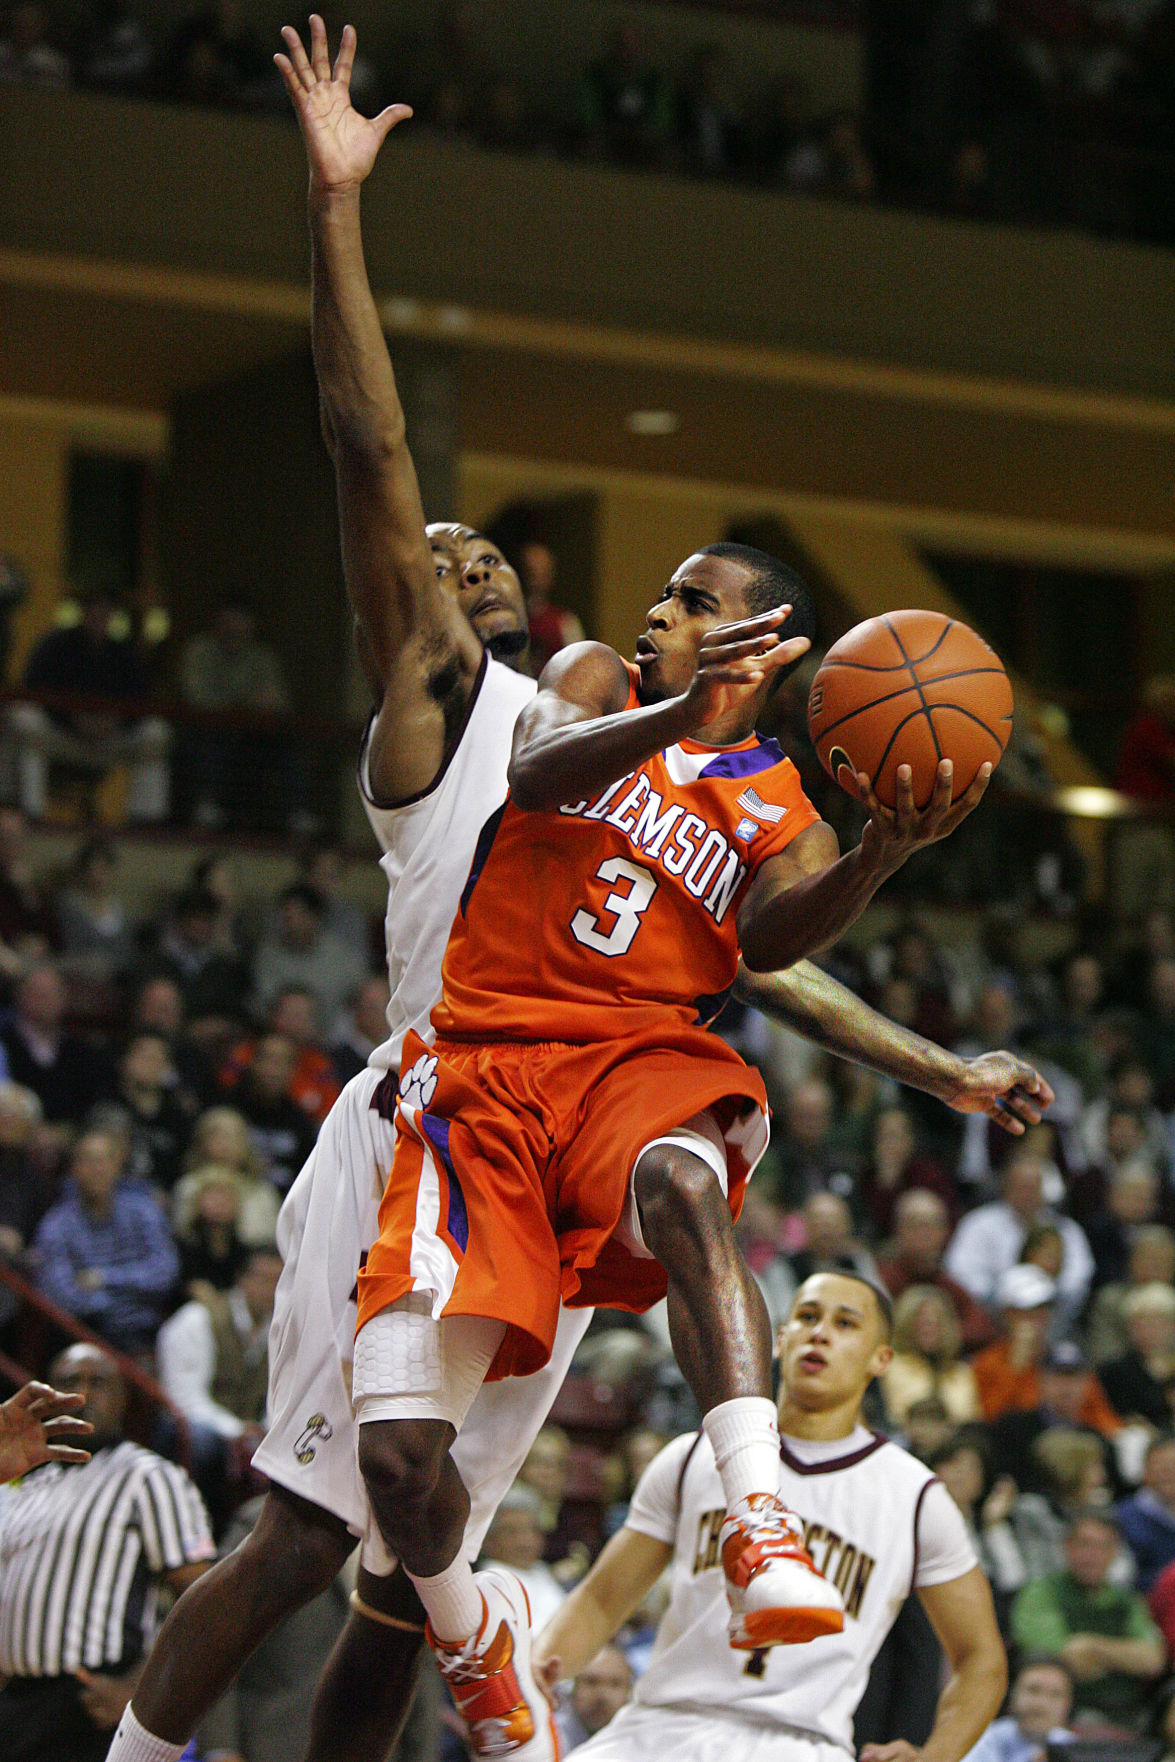 Clemson at College of Charleston basketball